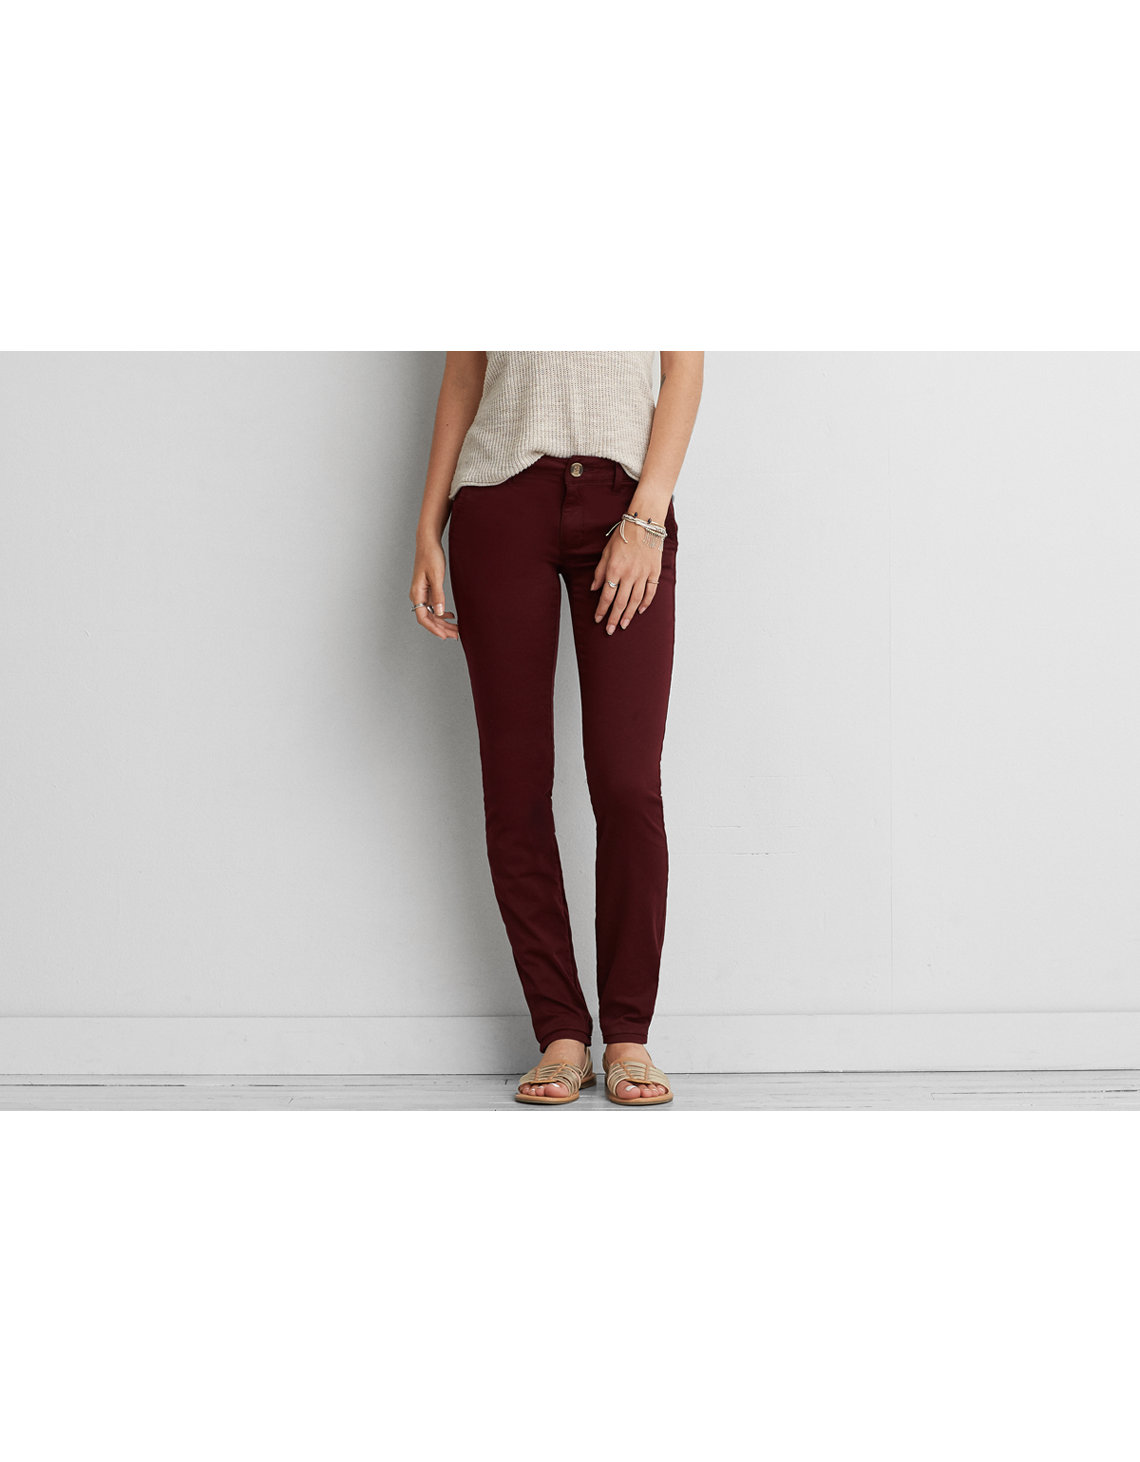 AE Denim X Skinny Pant - Lycra Pants American Eagle Outfitters